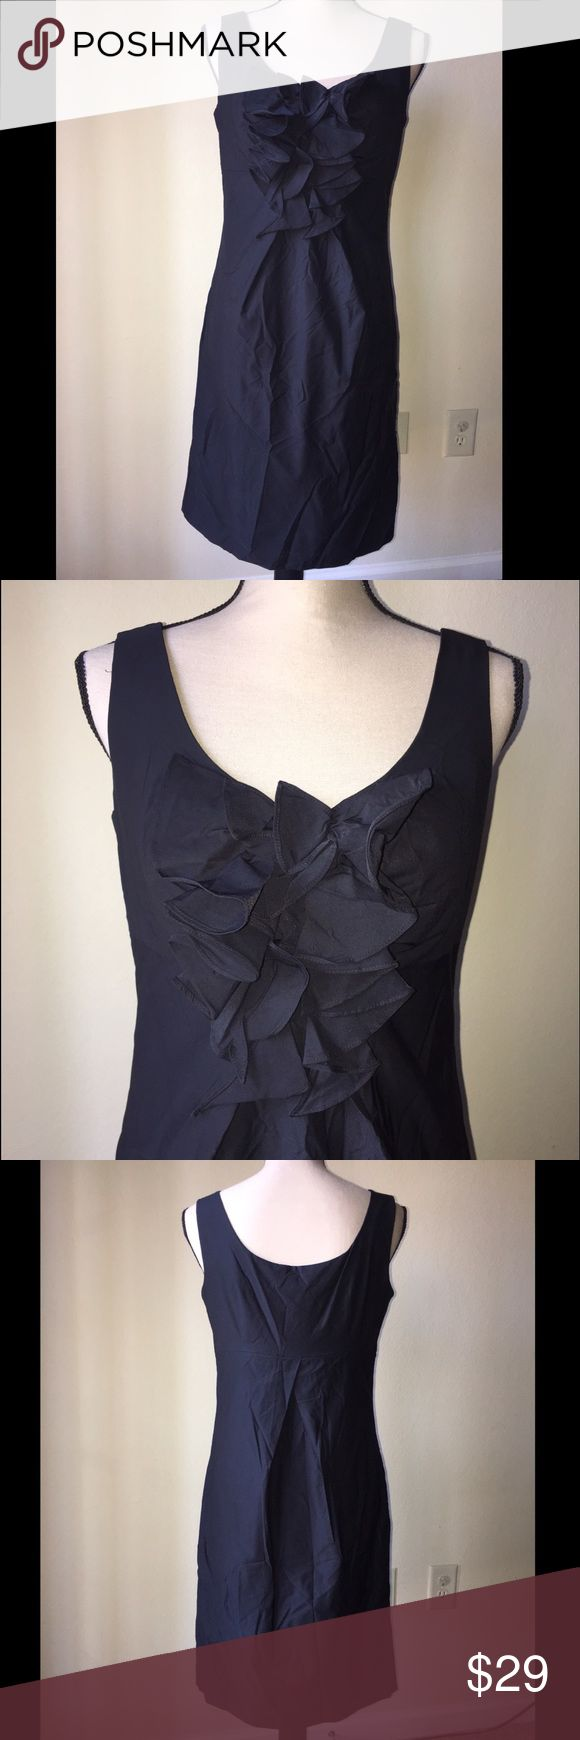 "NEW Donna Ricco Cocktail Ruffles Neck Dress Size 6 NEW Donna Ricco Nordstrom Black Cocktail Ruffles Neck Dress Size 6 New with tag! Length from pit to bottom: 29"" Pet and smoke free home. If you have any questions feel free to ask. Donna Ricco Dresses Midi"